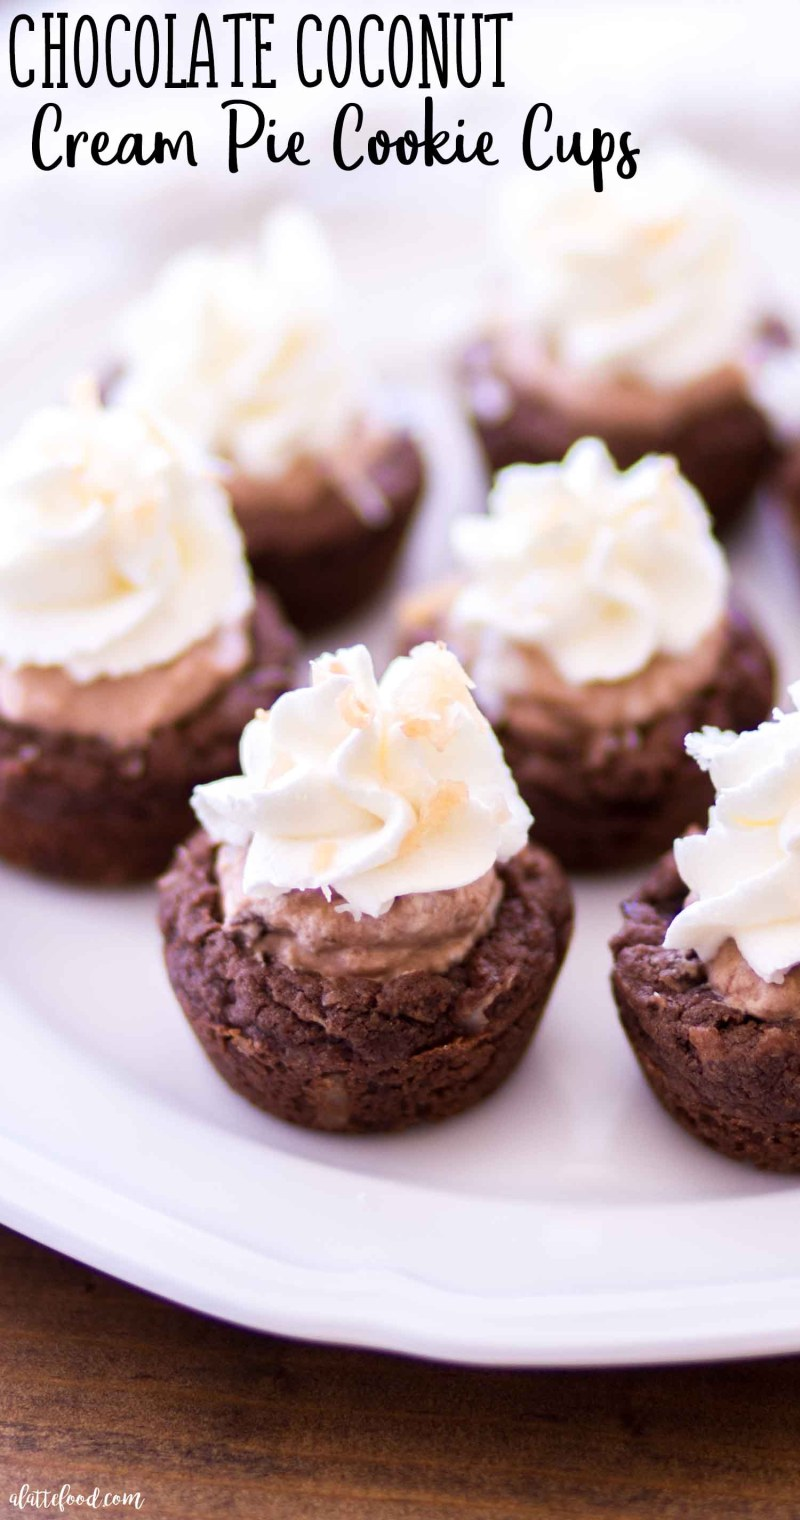 Homemade Easy Chocolate Coconut Cream Pie Cookie Cups made with toasted coconut and homemade whipped cream.